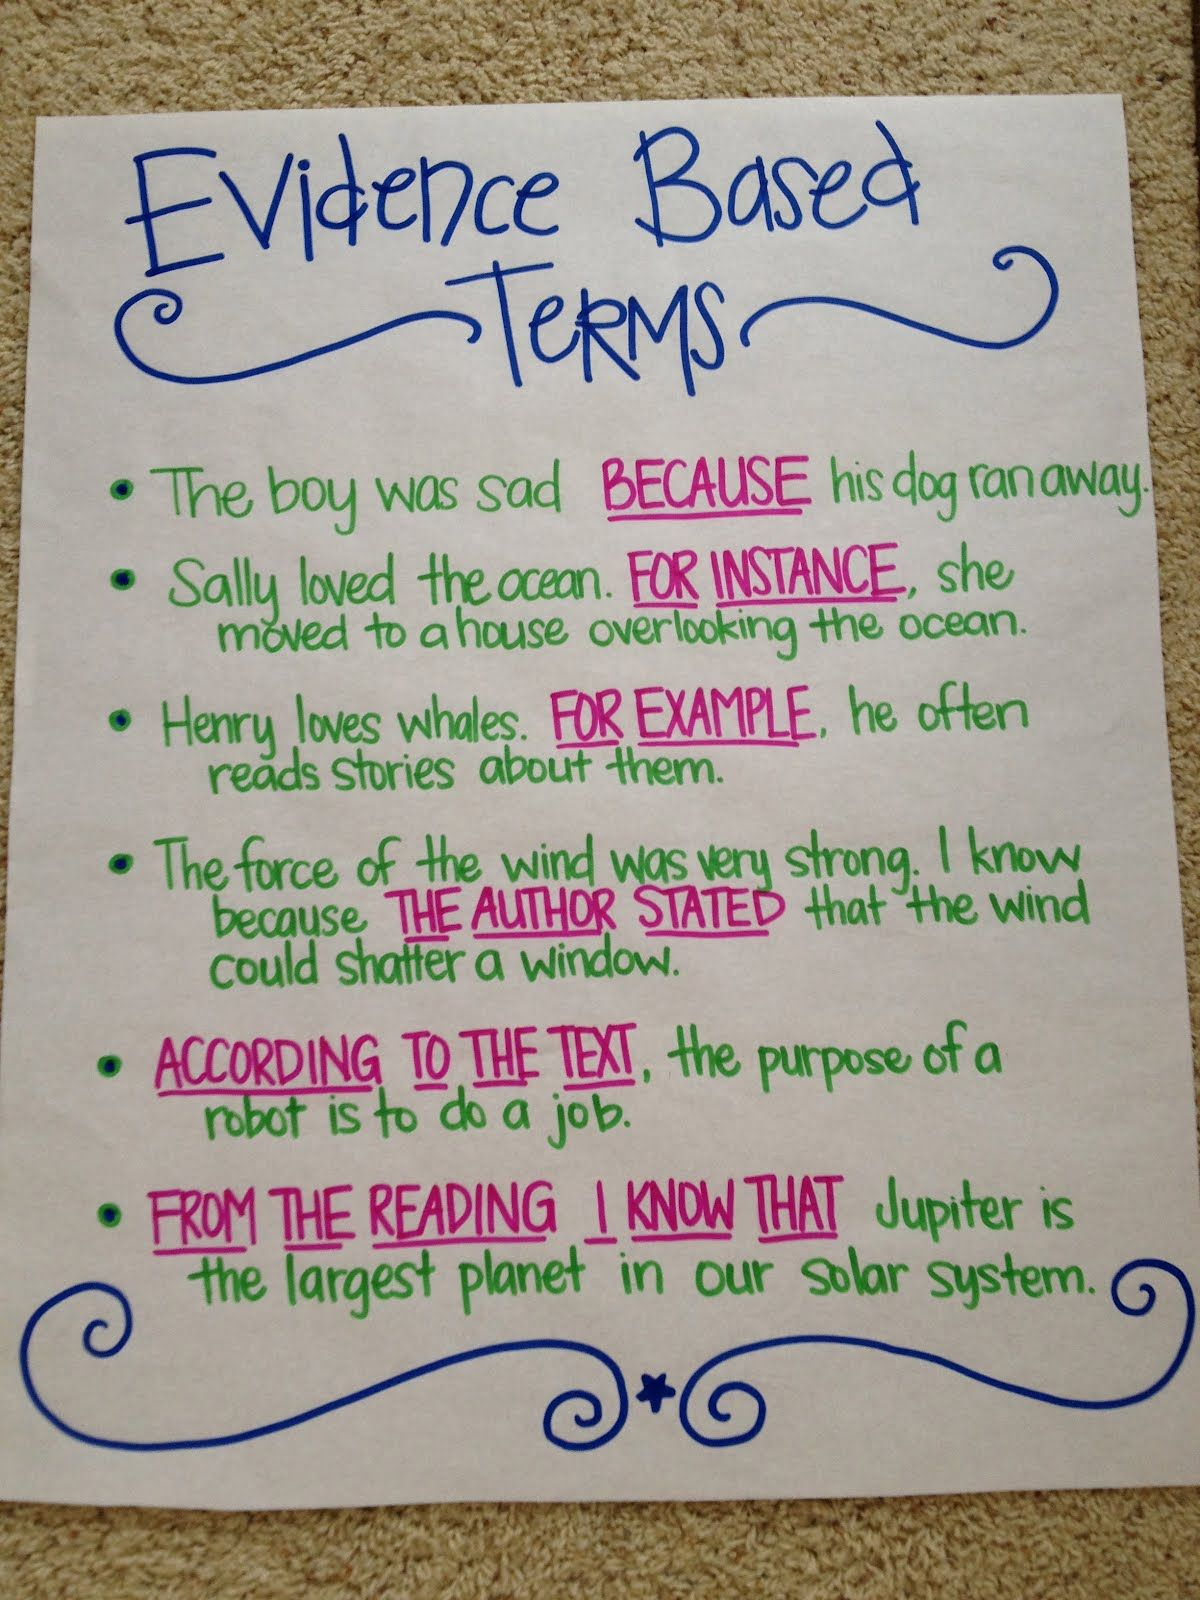 Evidence based terms for responses.